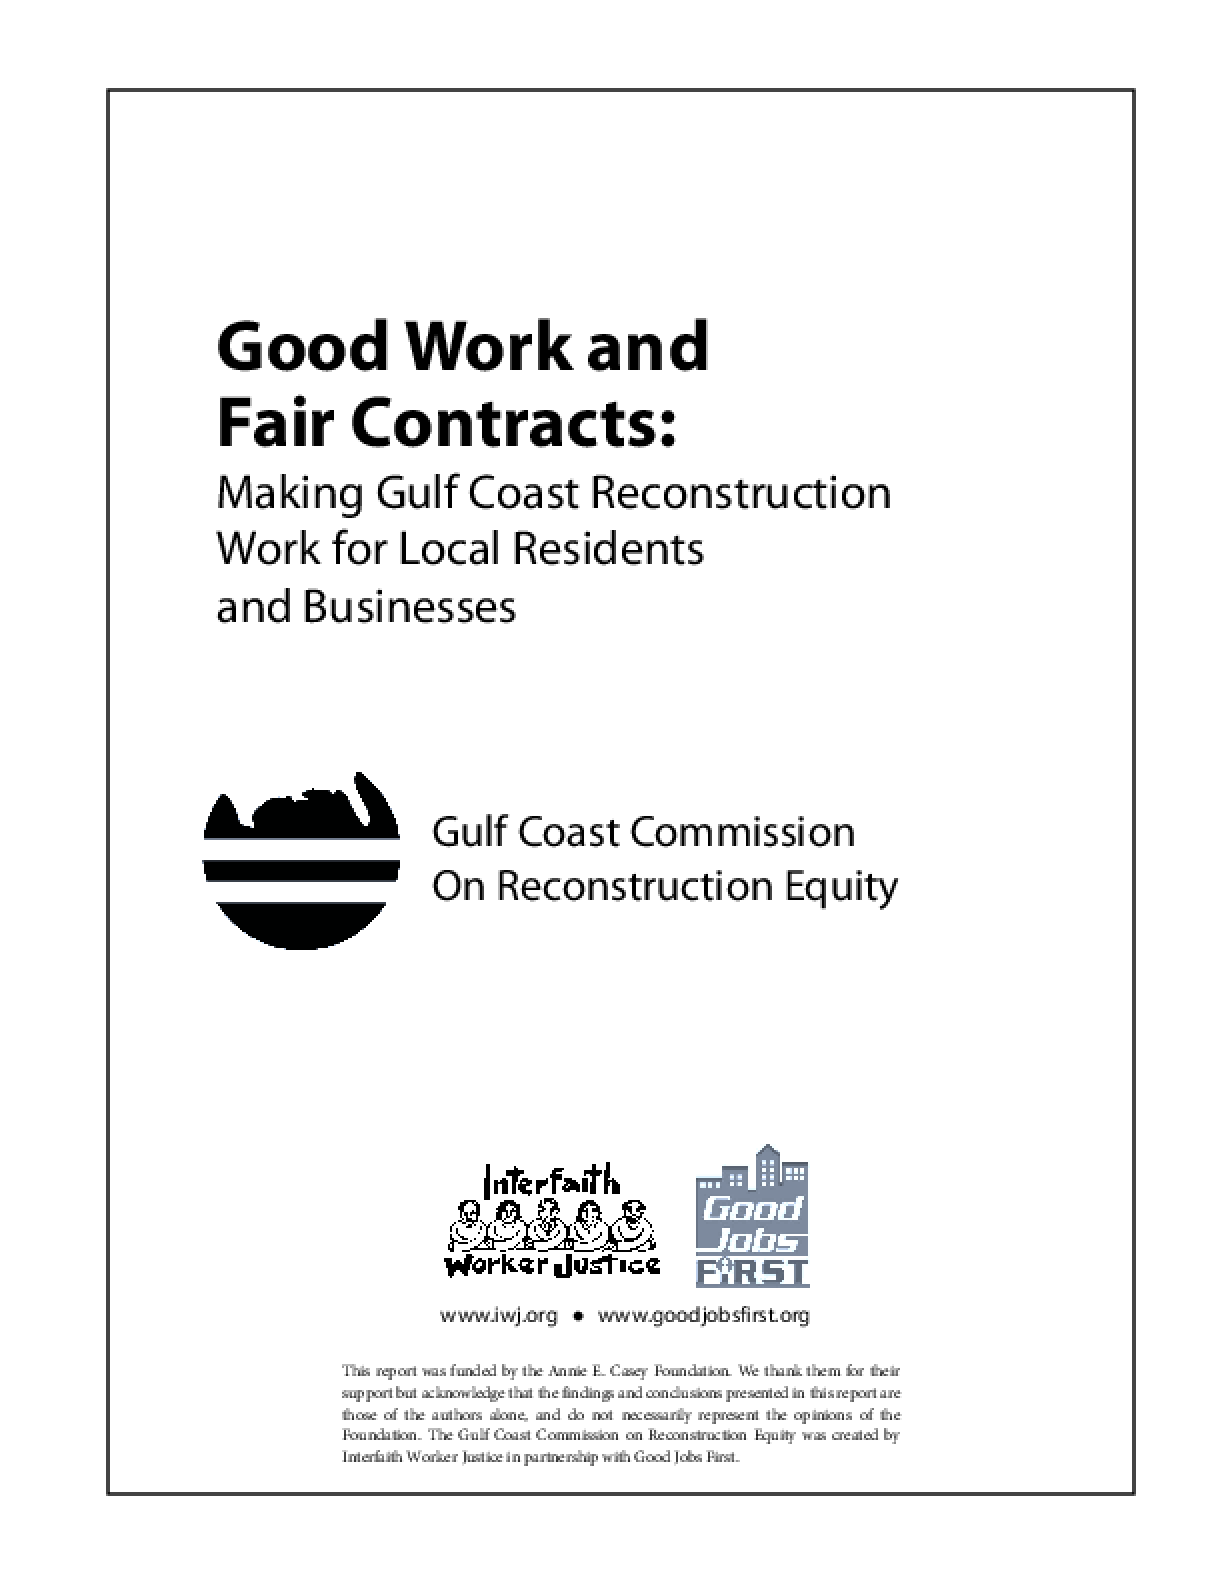 Good Work and Fair Contracts: Making Gulf Coast Reconstruction Work for Local Residents and Businesses